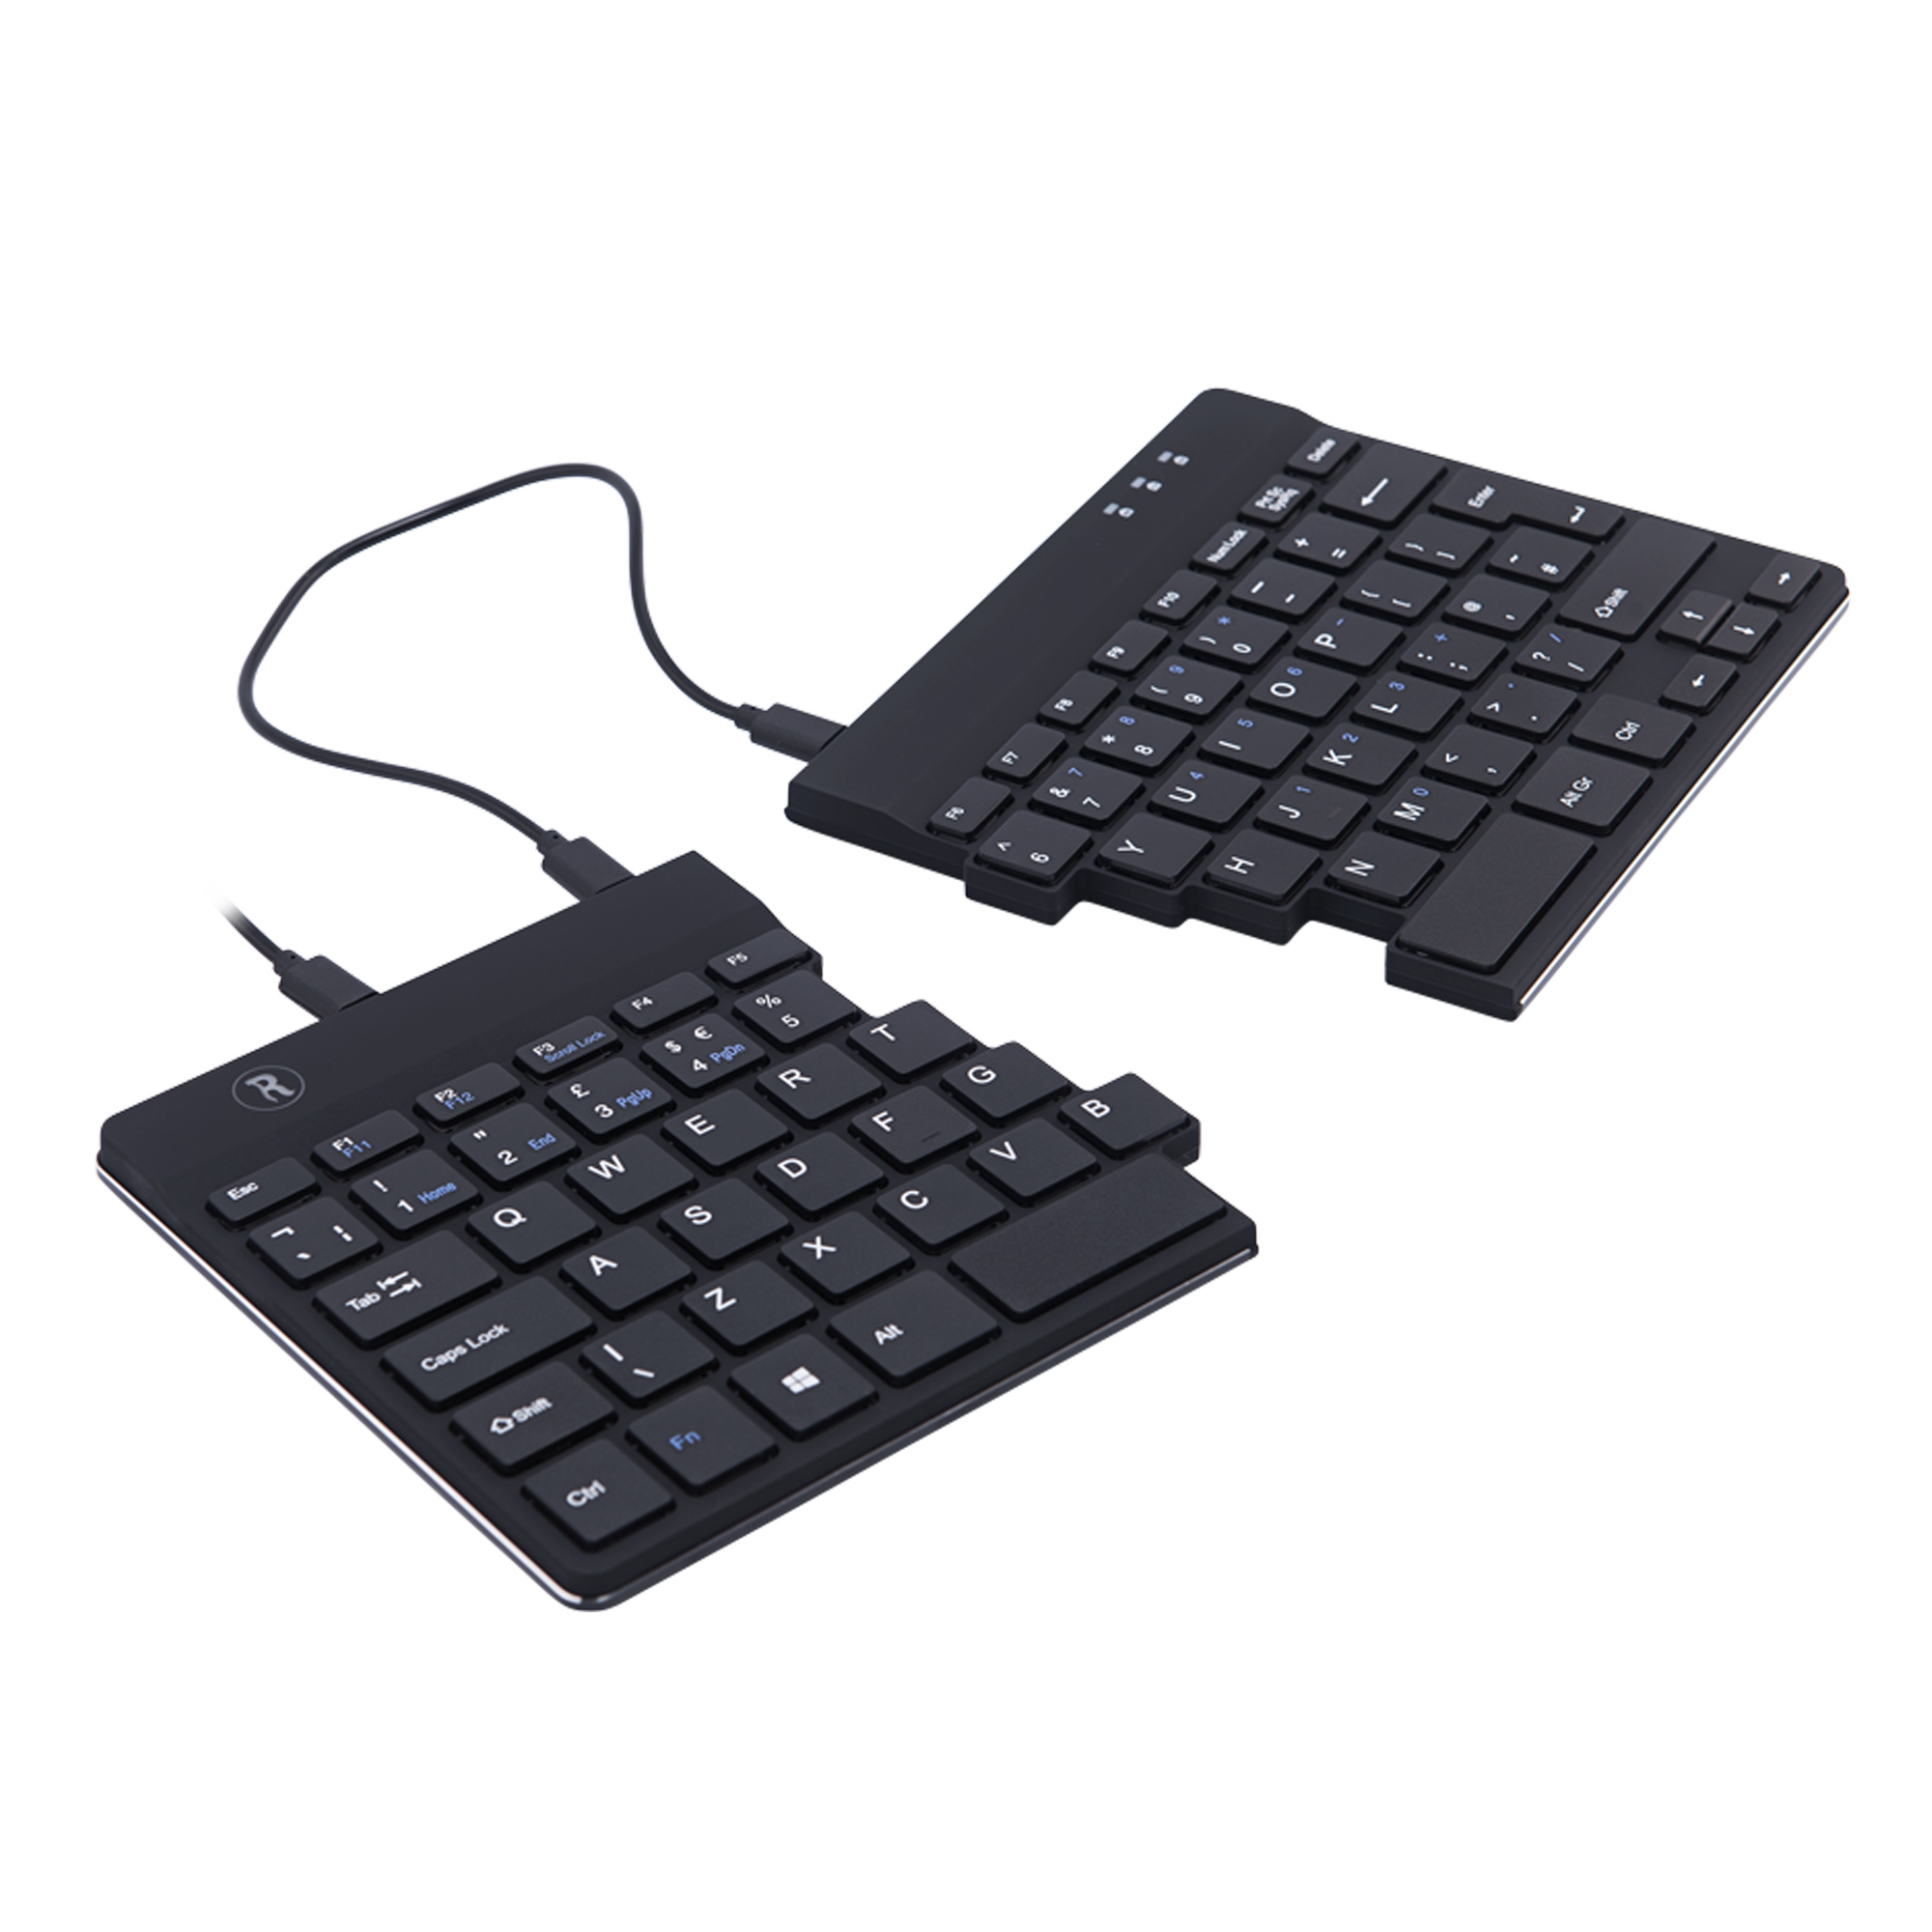 R-Go Split Break Ergonomic Keyboard, QWERTY (UK), black, wired - 4